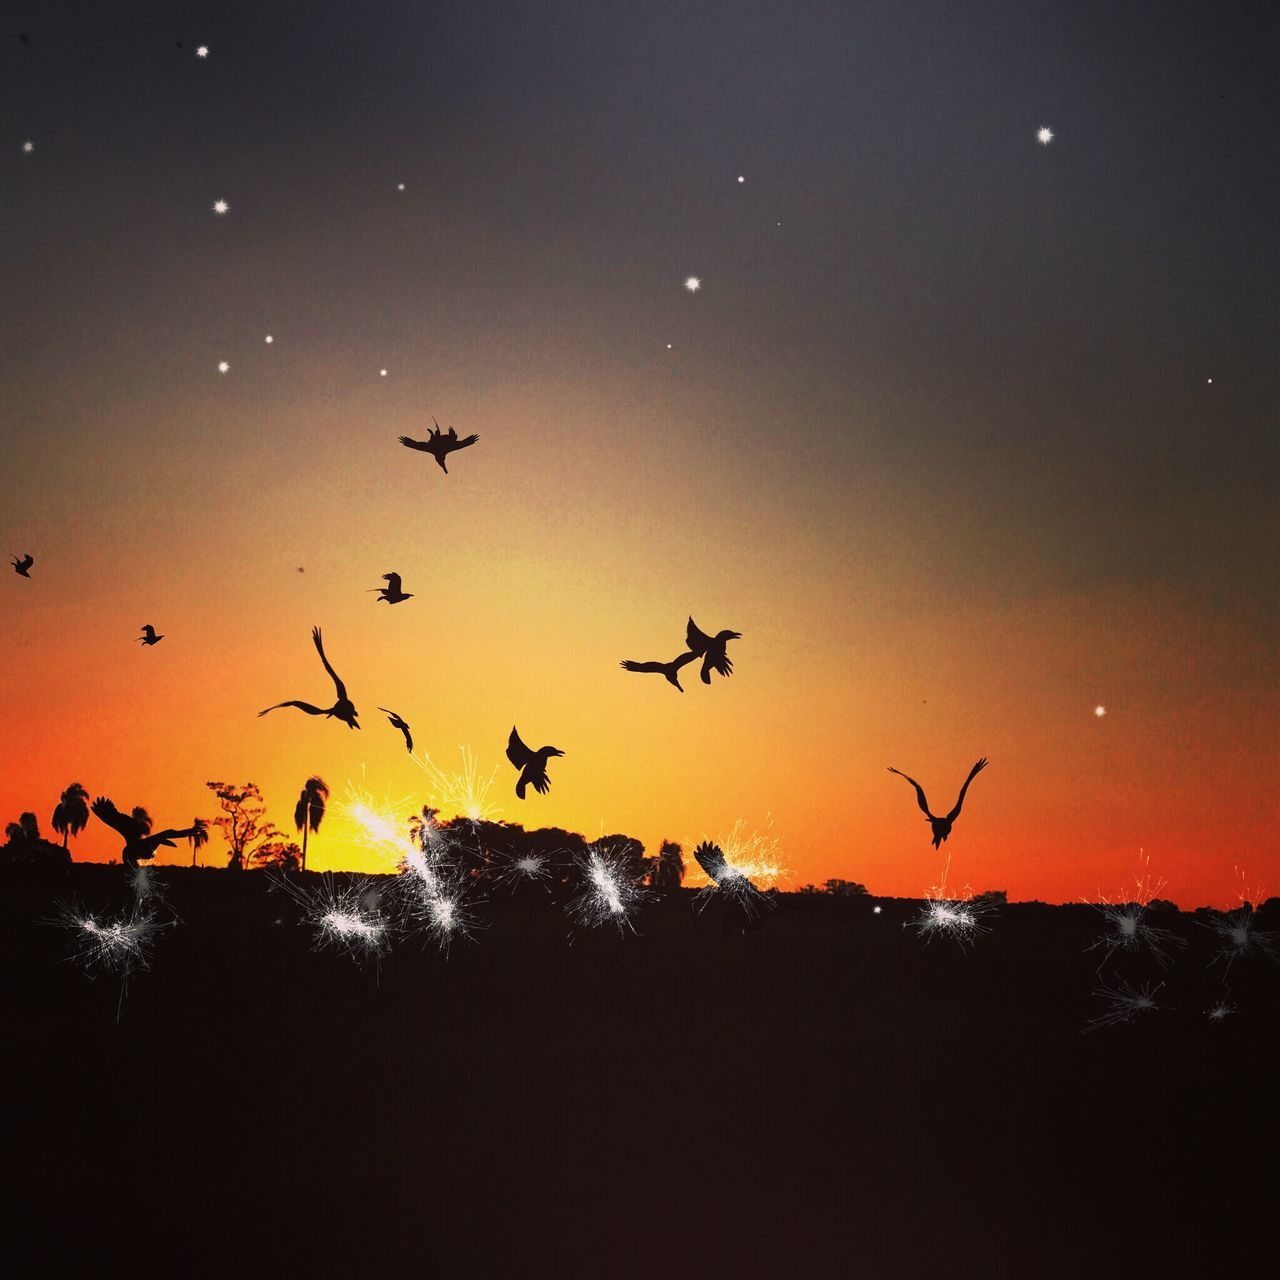 flying, animals in the wild, animal themes, bird, silhouette, large group of animals, sunset, nature, flock of birds, animal wildlife, beauty in nature, migrating, mid-air, sky, outdoors, no people, togetherness, spread wings, tree, flamingo, day